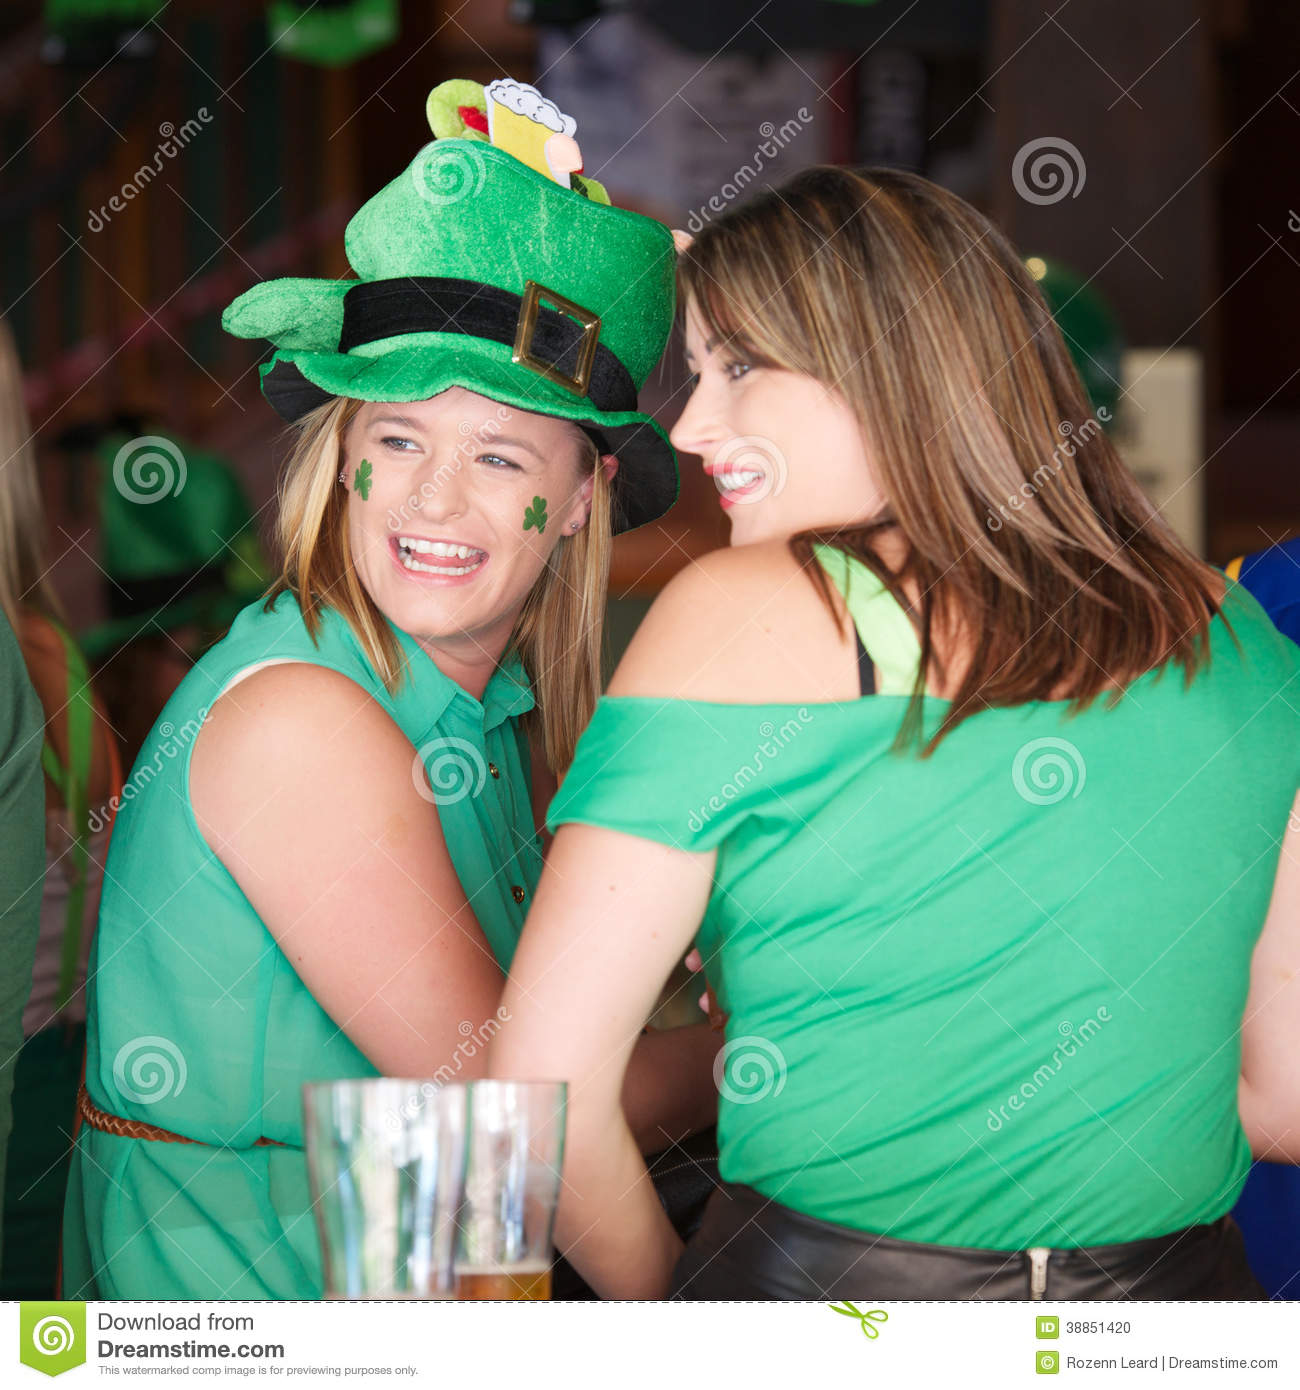 Pity, Irish girls in party remarkable, rather